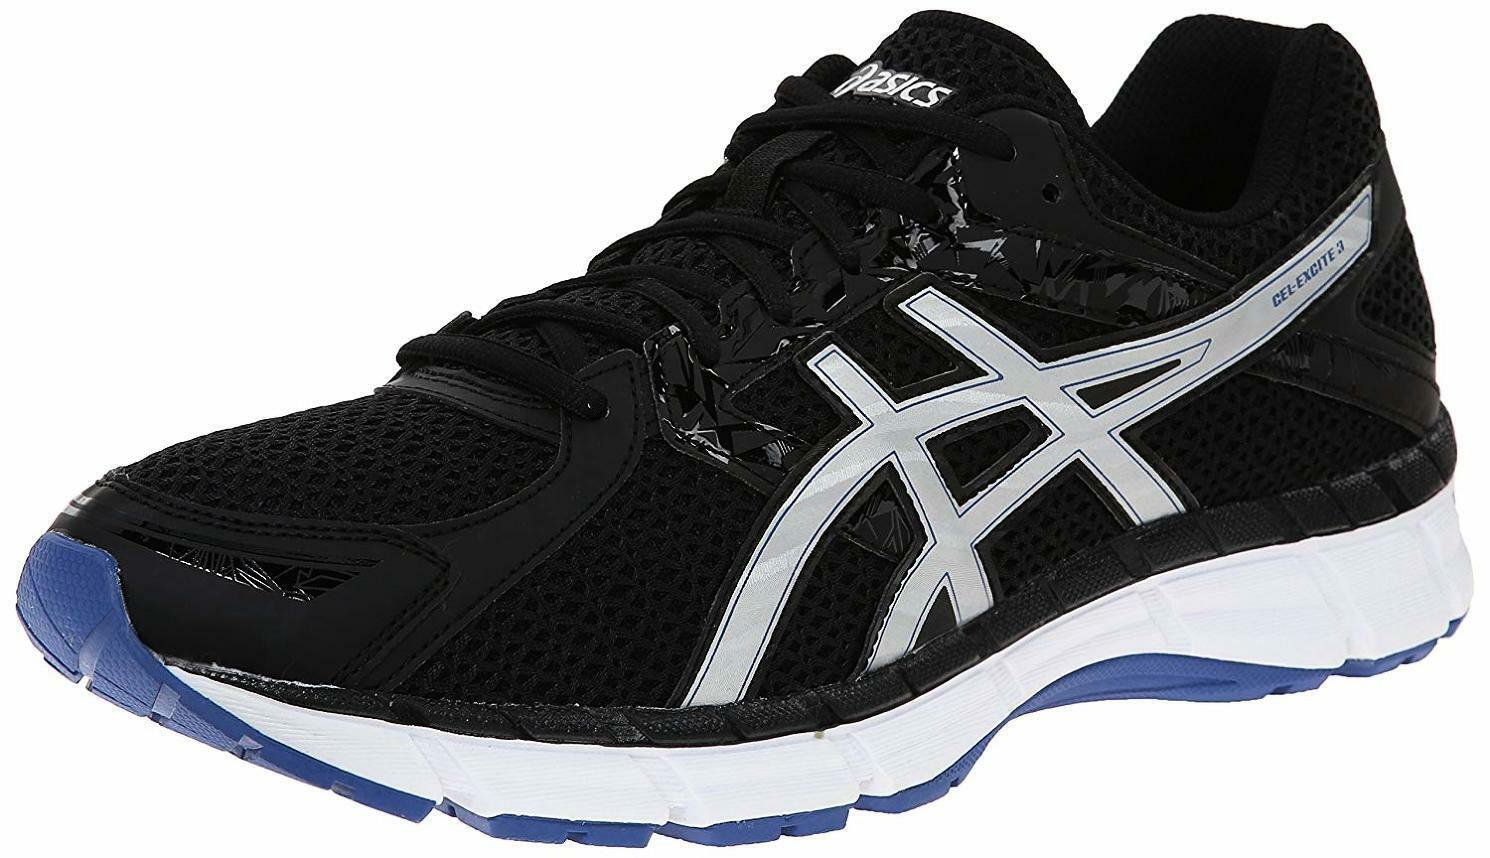 ASICS Men's GEL-Excite 3 Running shoes - Choose SZ color